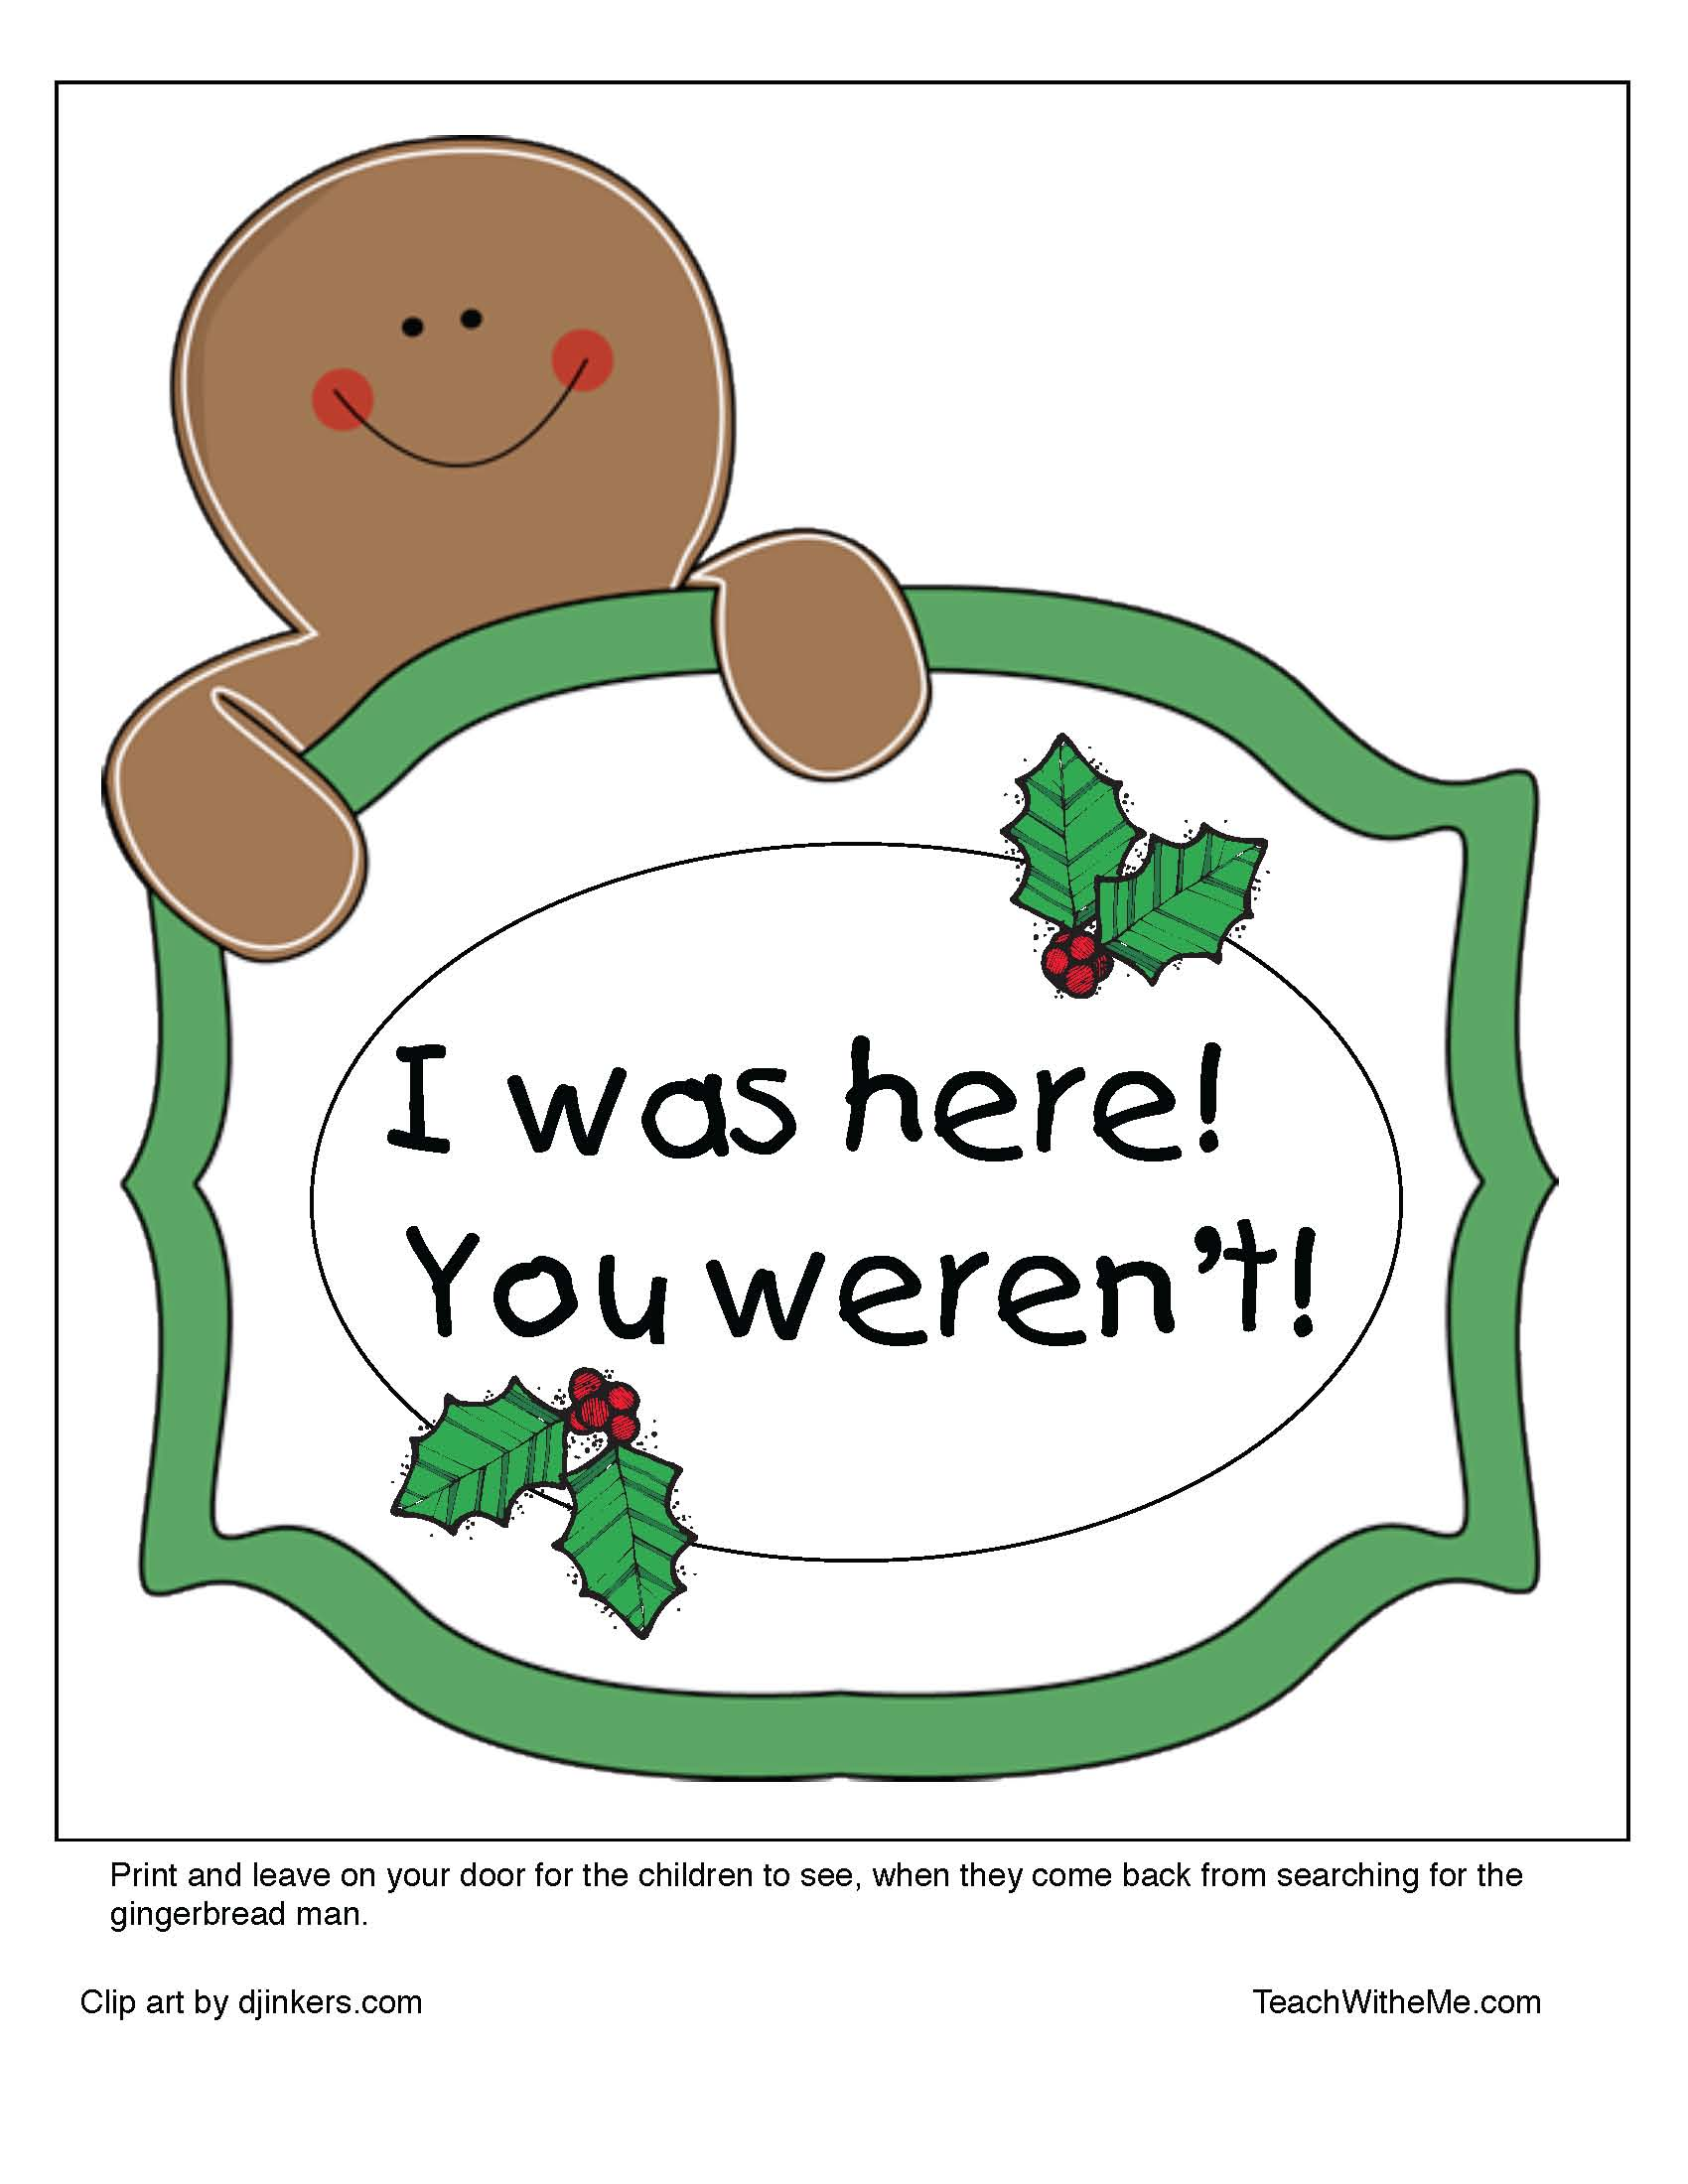 gingerbread activities, gingerbread lessons, gingerbread graphing, activities to go with The gingerbread man story, common core gingerbread, word family activities, an family activities, ox family activities, gingerbread crafts, gingerbread with a mustache, wanted posters, common core gingerbread, daily 5 for december,